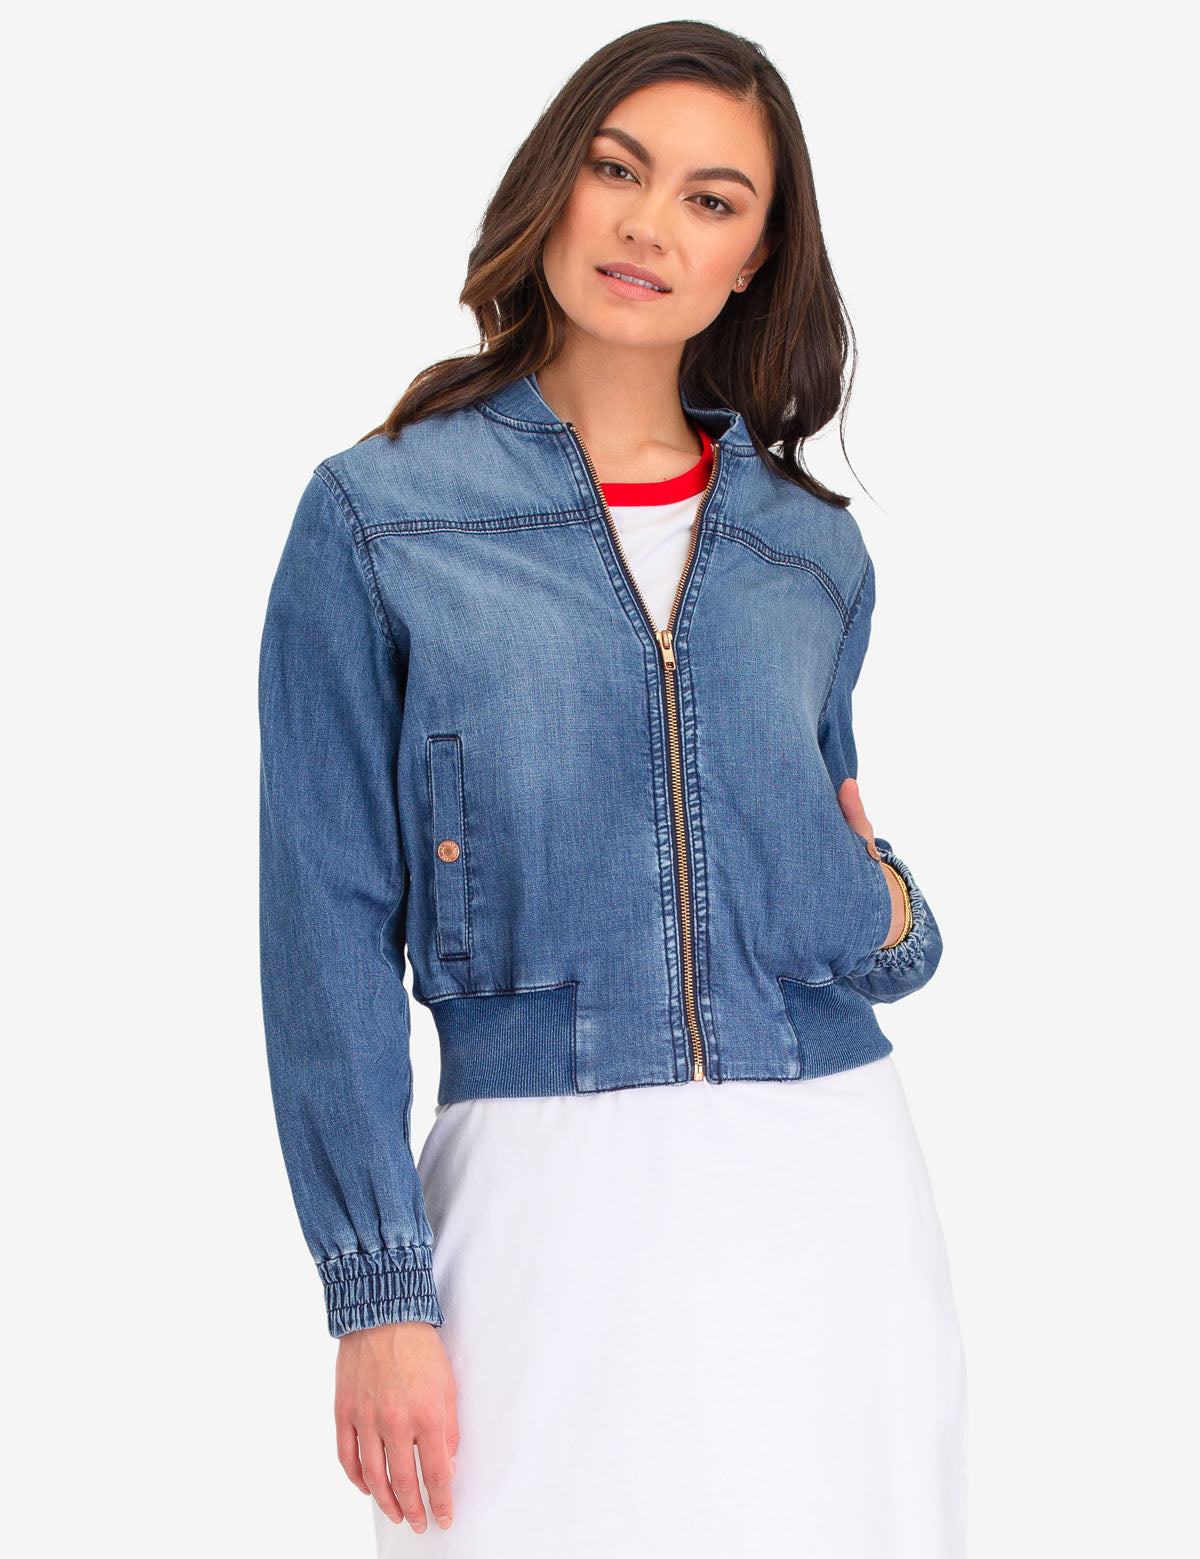 DENIM BOMBER JACKET - U.S. Polo Assn.